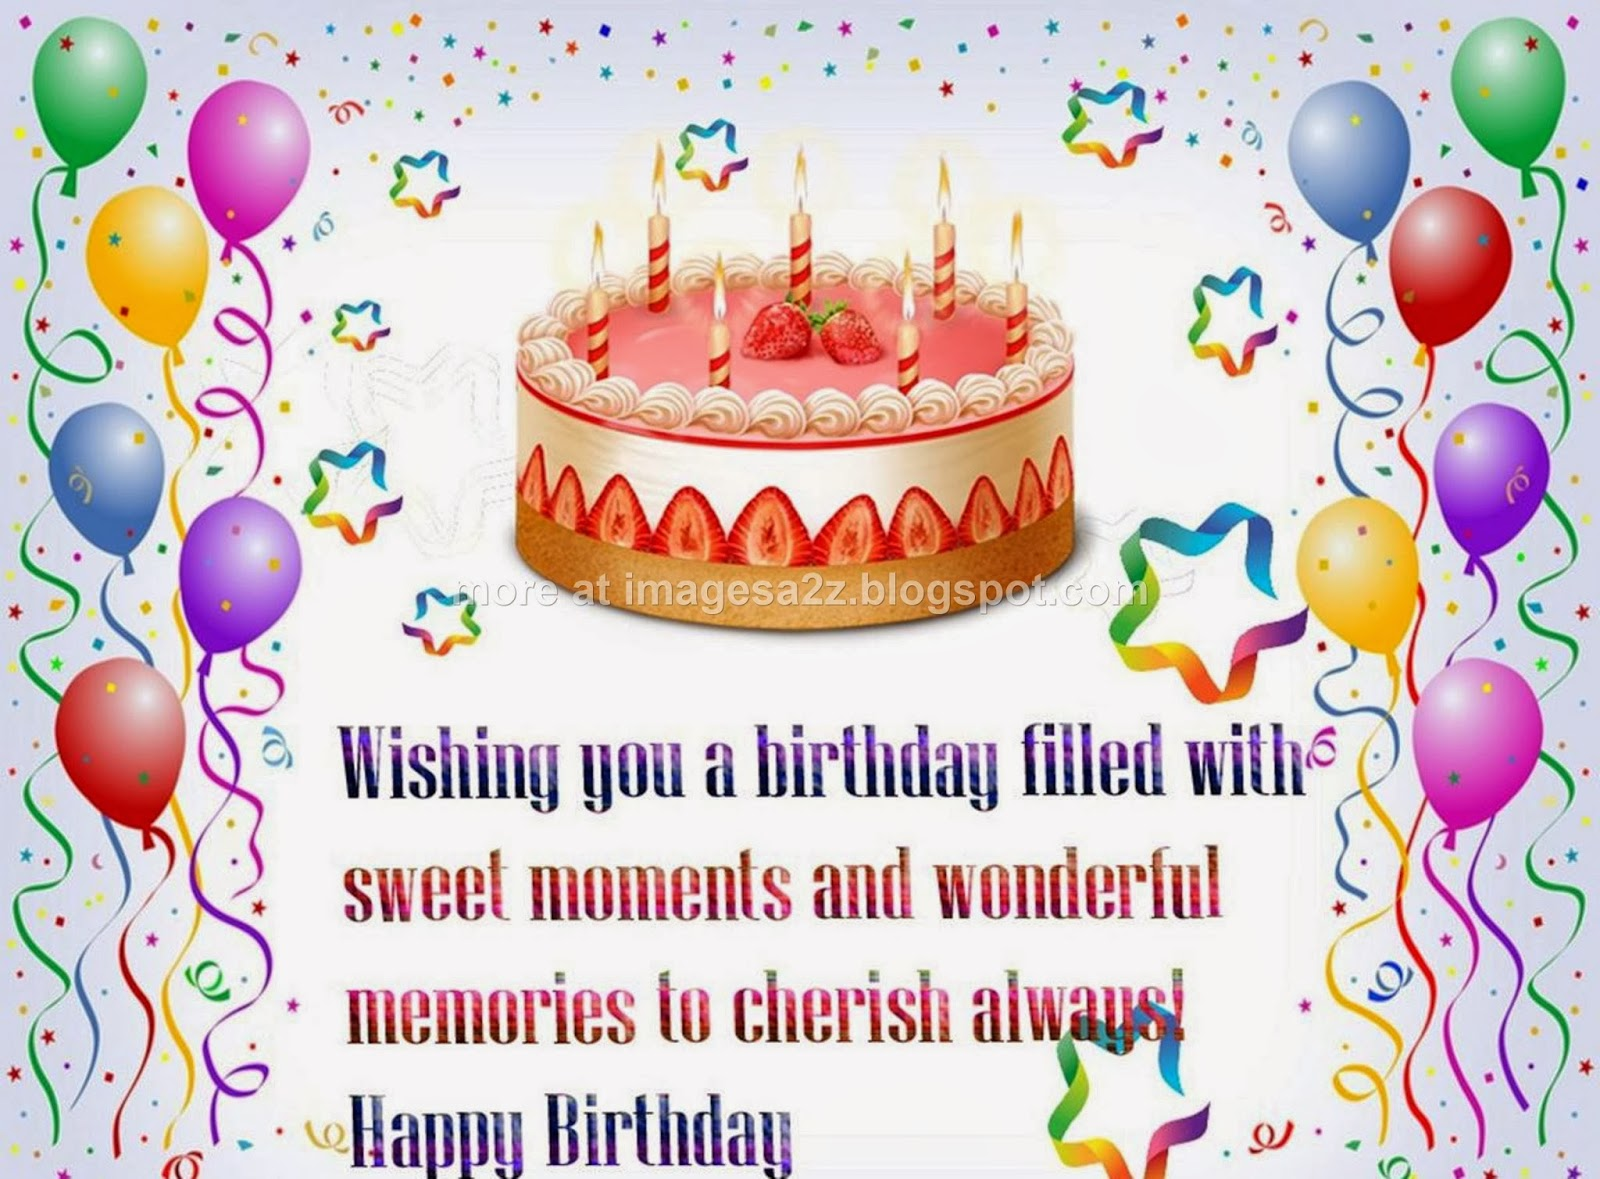 birthday wishes wallpaper for friend ; birthday-wallpaper-for-best-friend-1